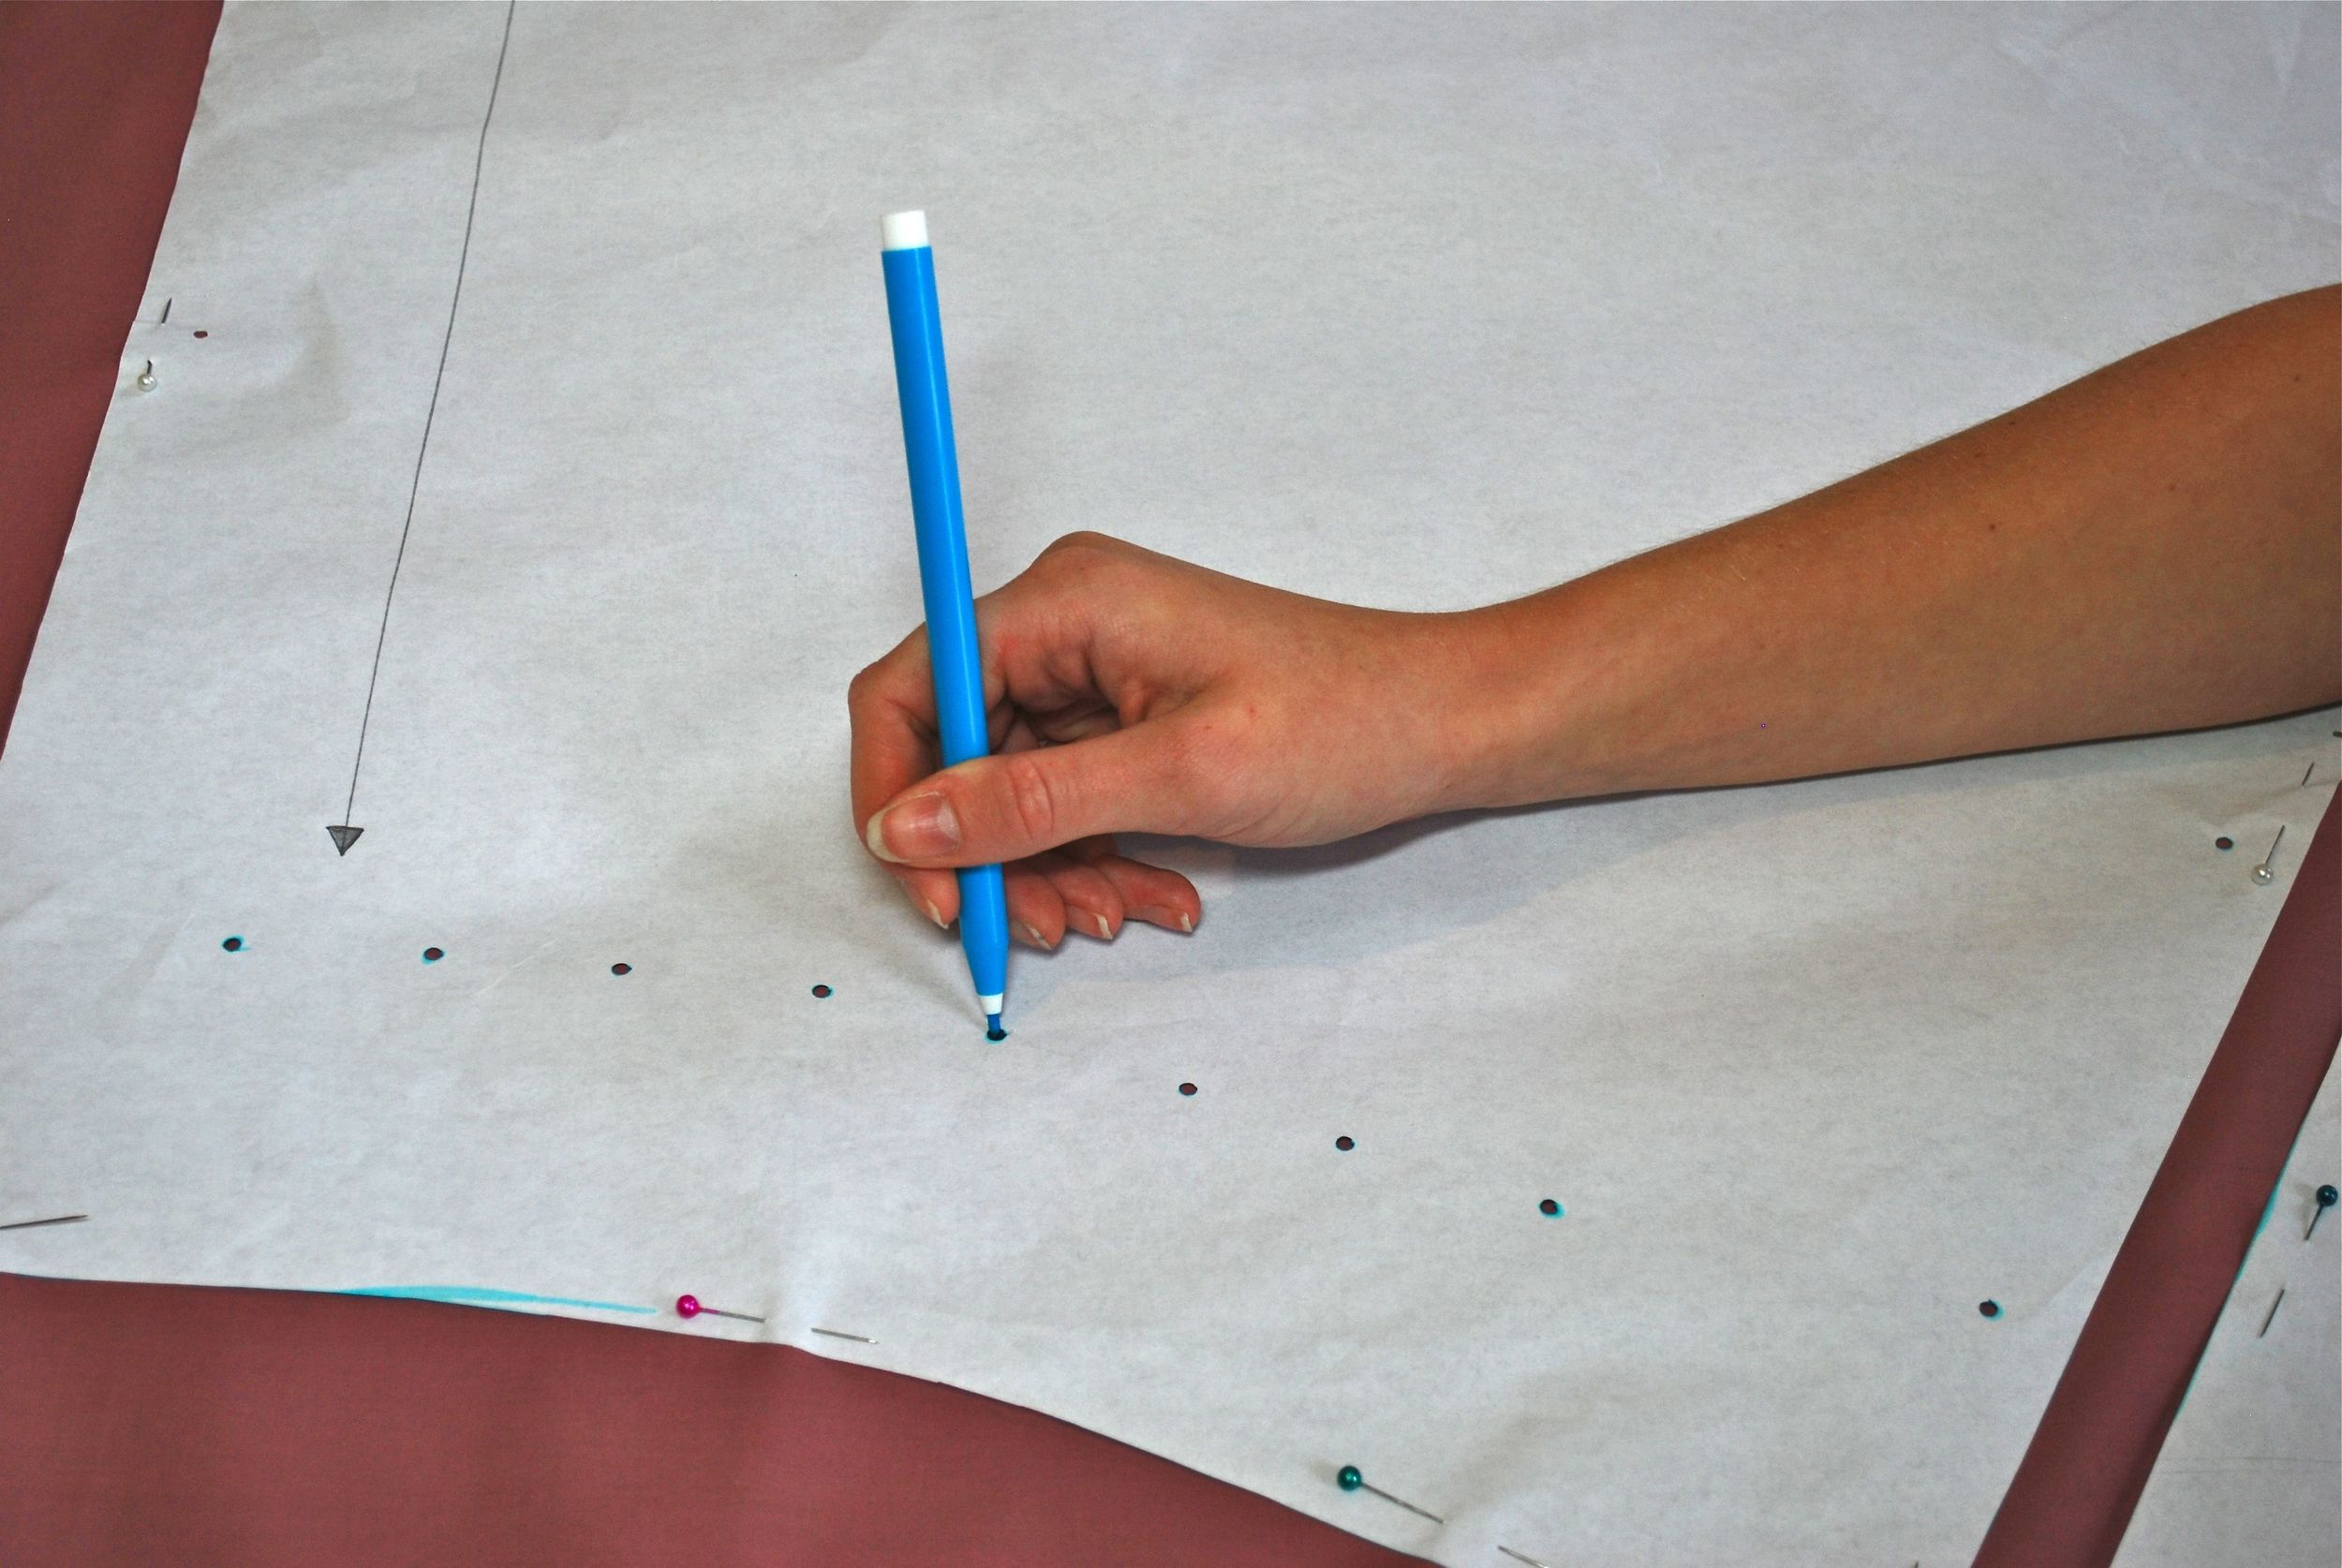 Marking out pleats on Naomi's pattern pieces. We punched holes thorough the small circles that were on the pattern, then stuck our pen through the holes to mark the fabric.